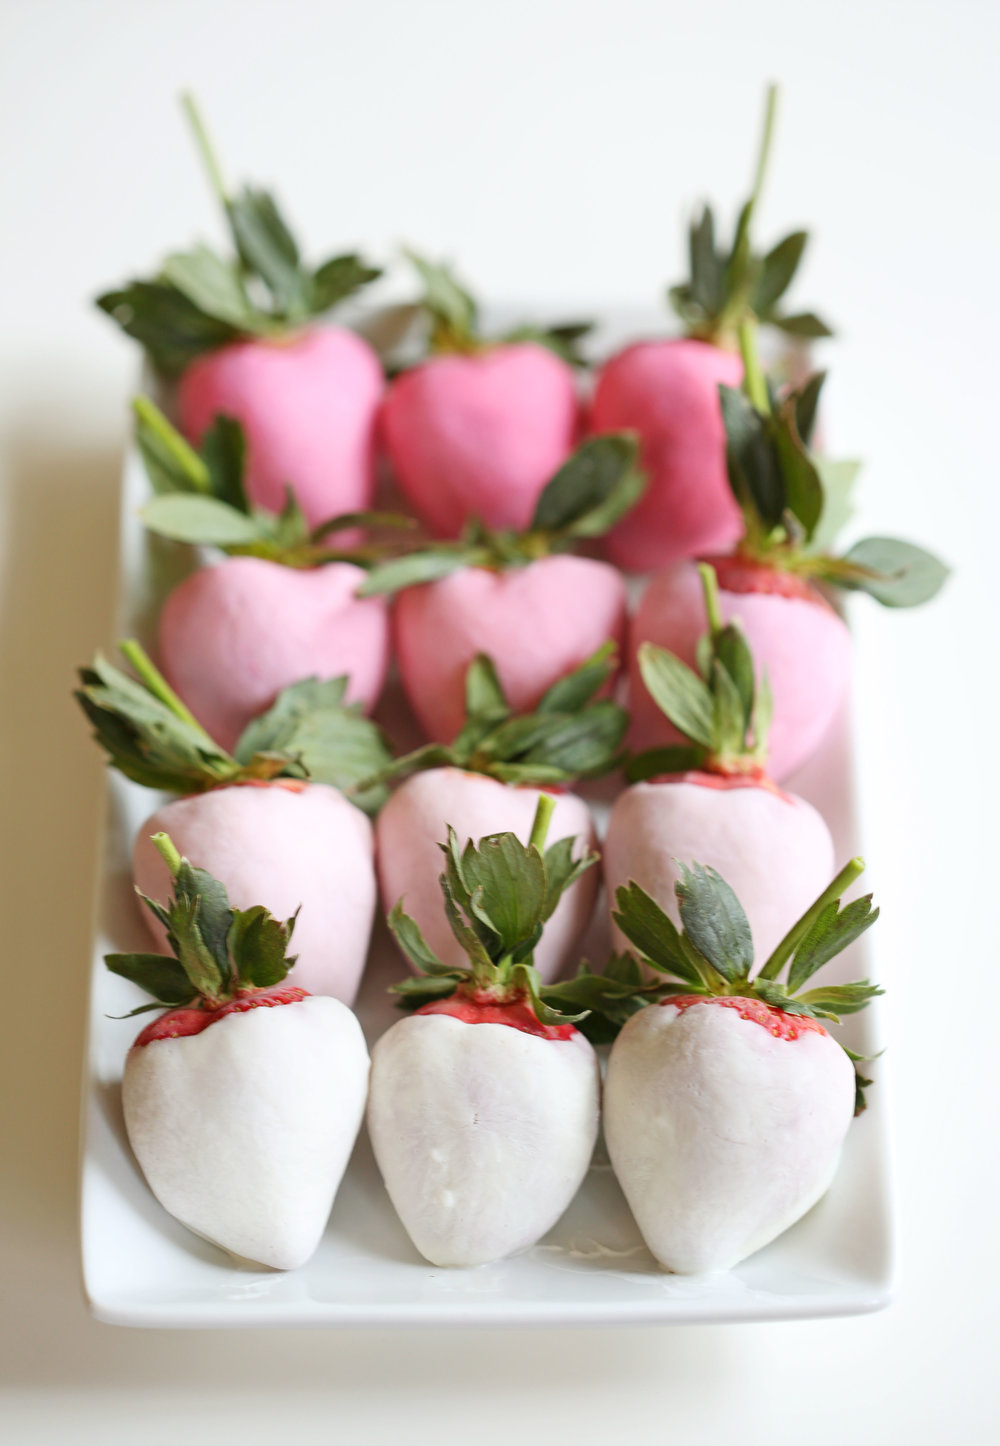 ombre-strawberries-8.jpg